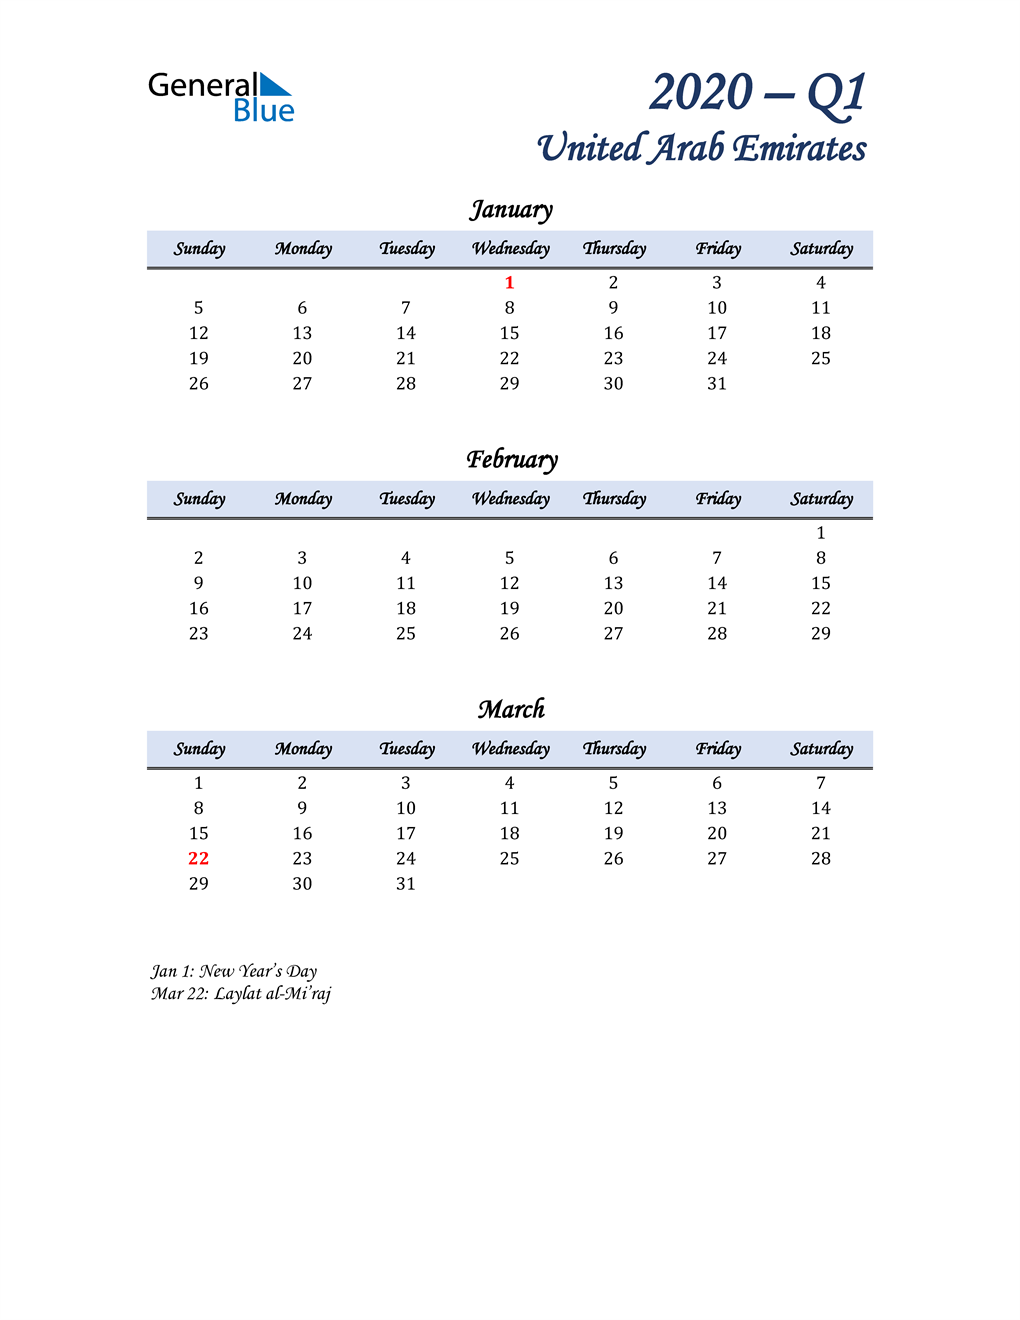 January, February, and March Calendar for United Arab Emirates